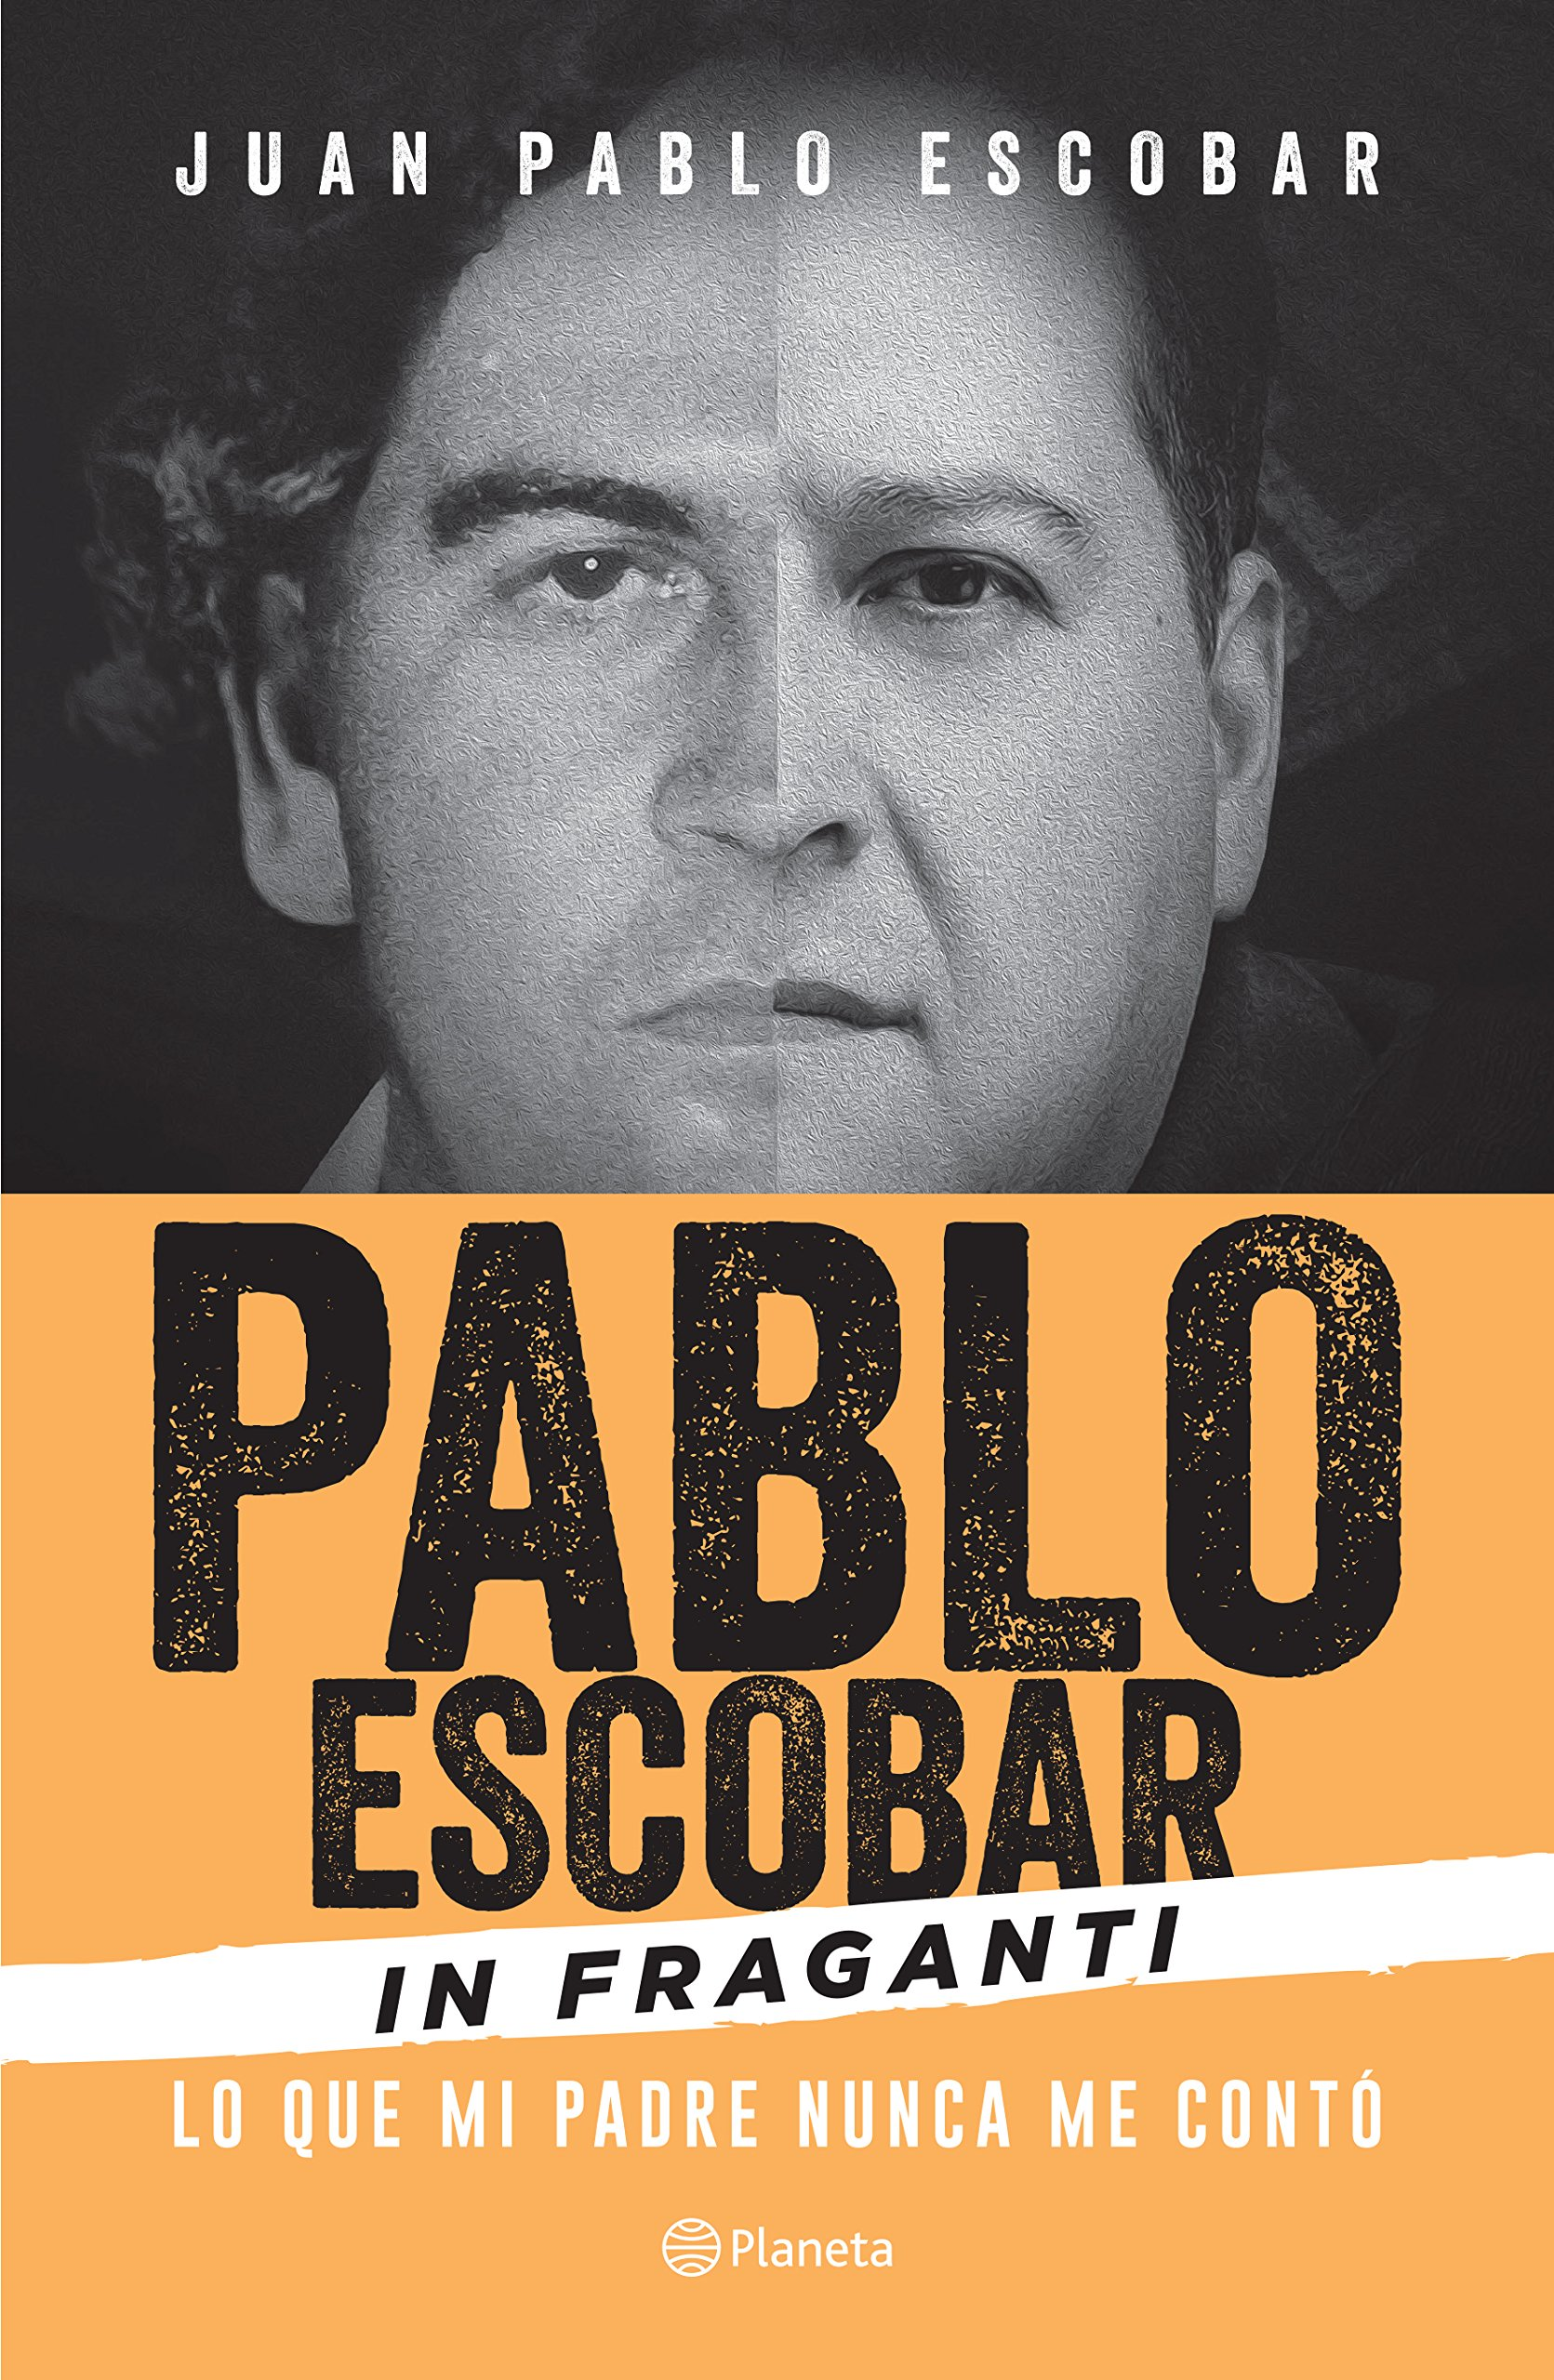 Pablo Escobar in Fraganti (Spanish Edition): Escobar: 9786070739422: Amazon.com: Books